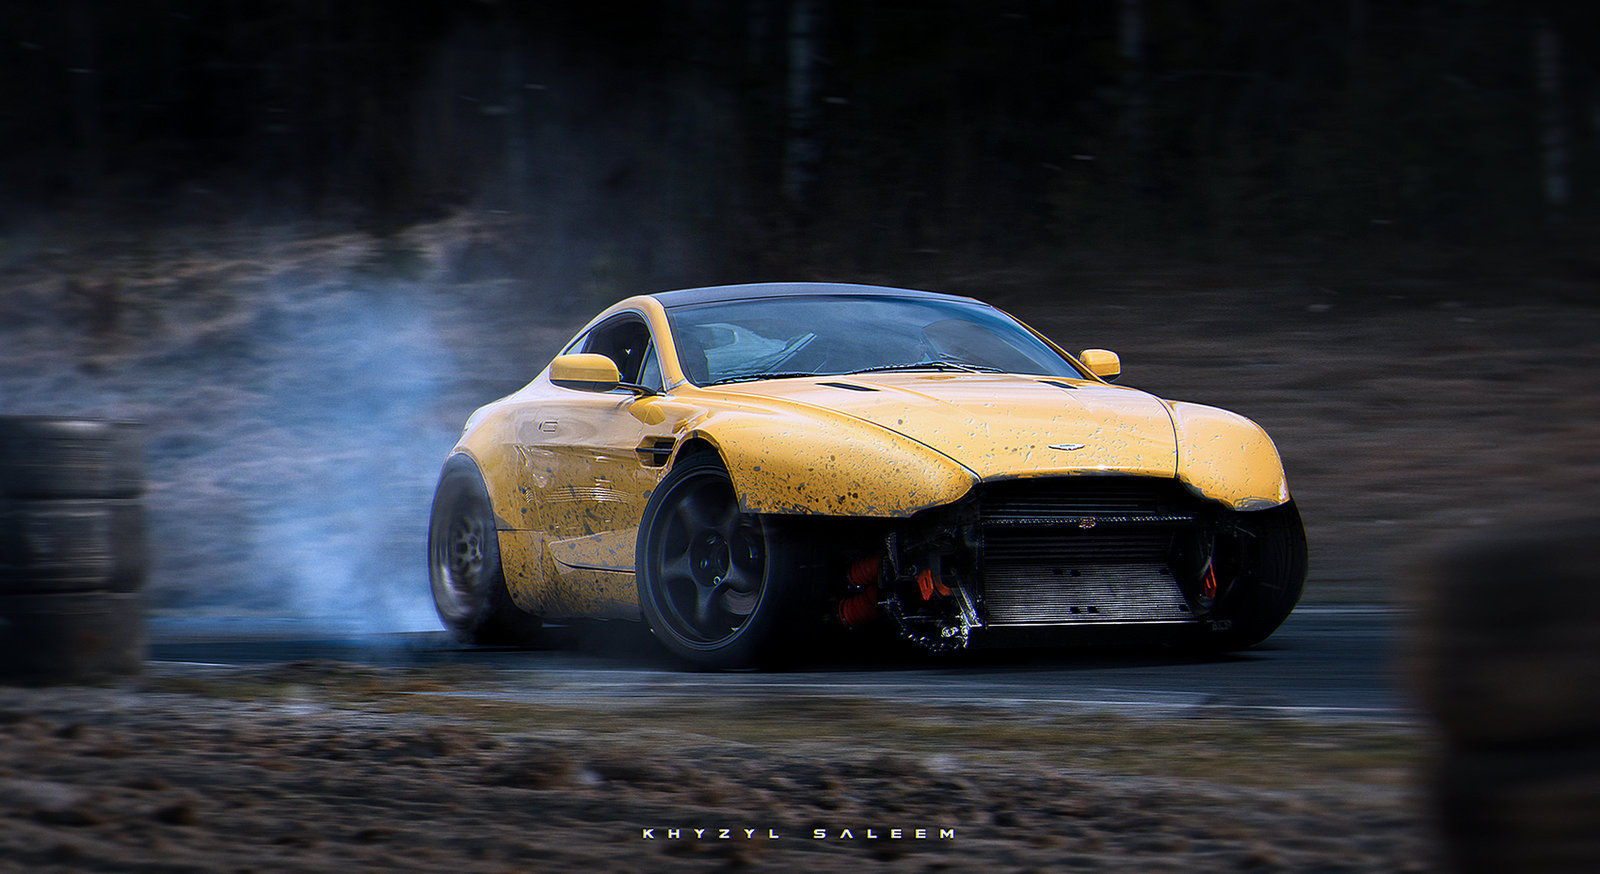 Lol V8 Vantage Drift Missile Rendering By Khyzyl Saleem